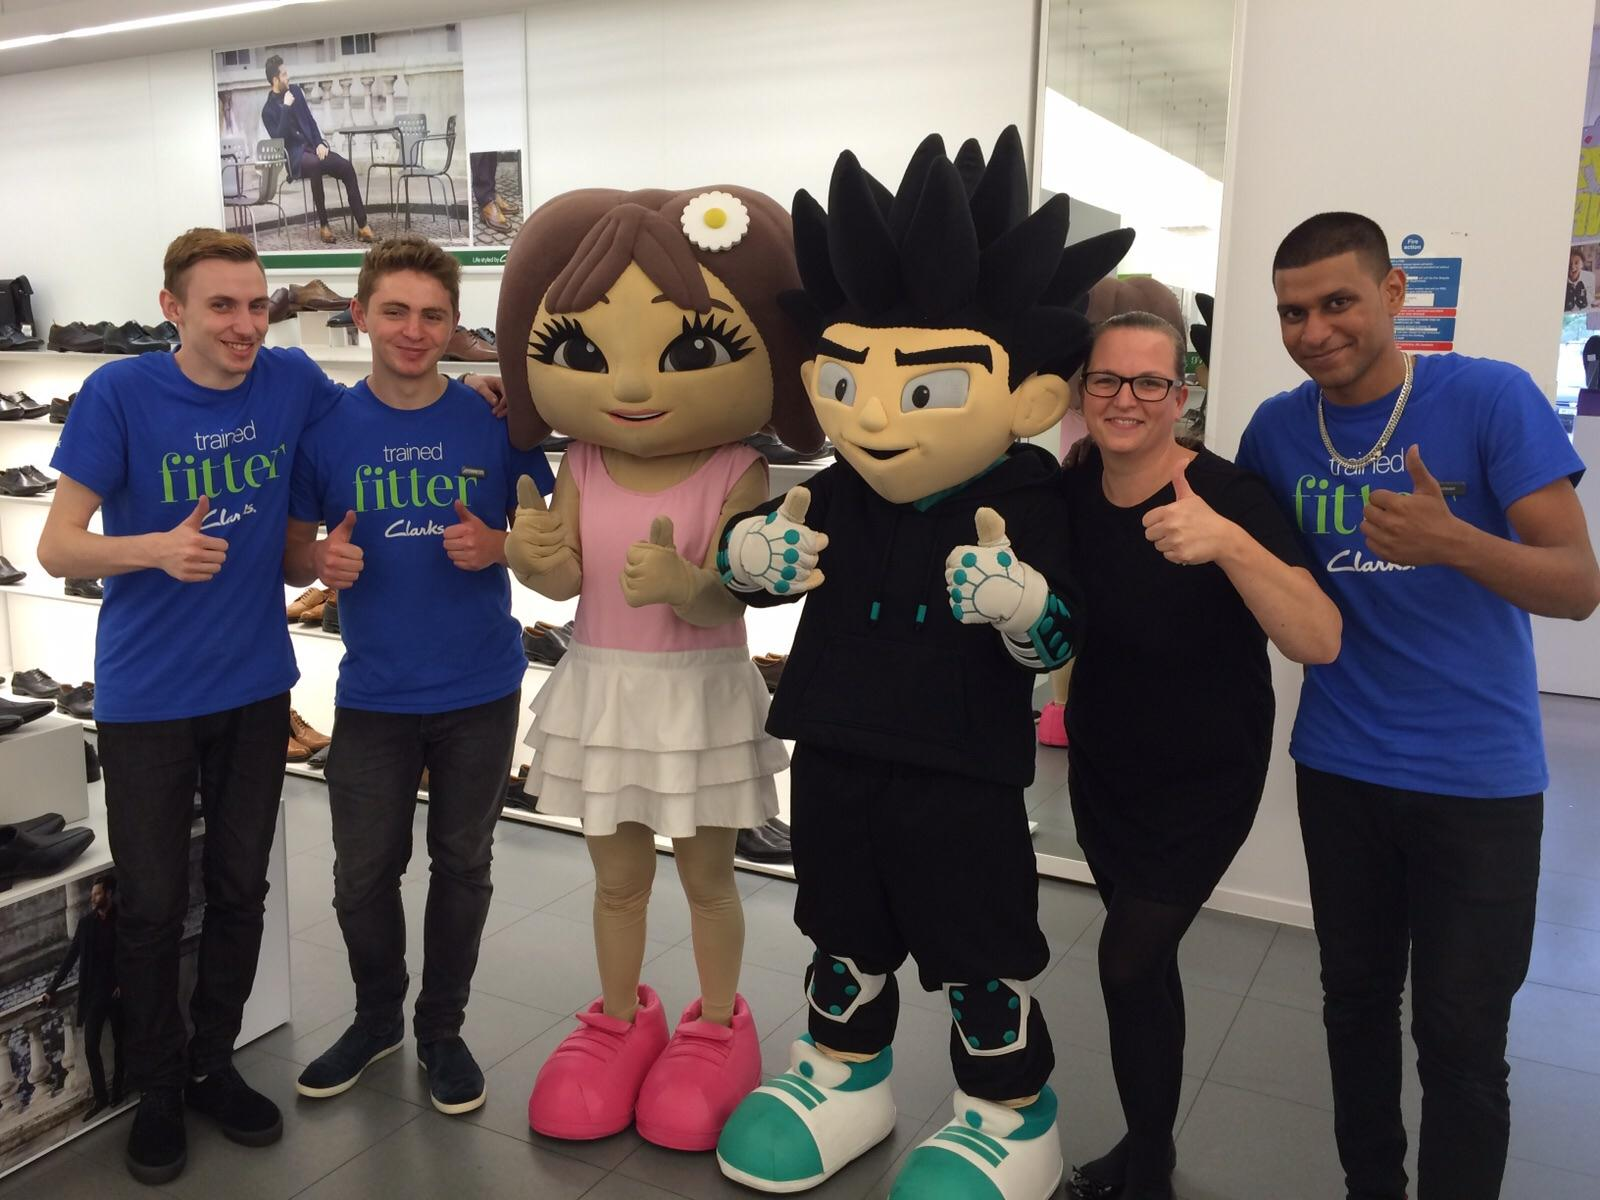 The Retail Trust's mascots alongside some of the members they have supported.